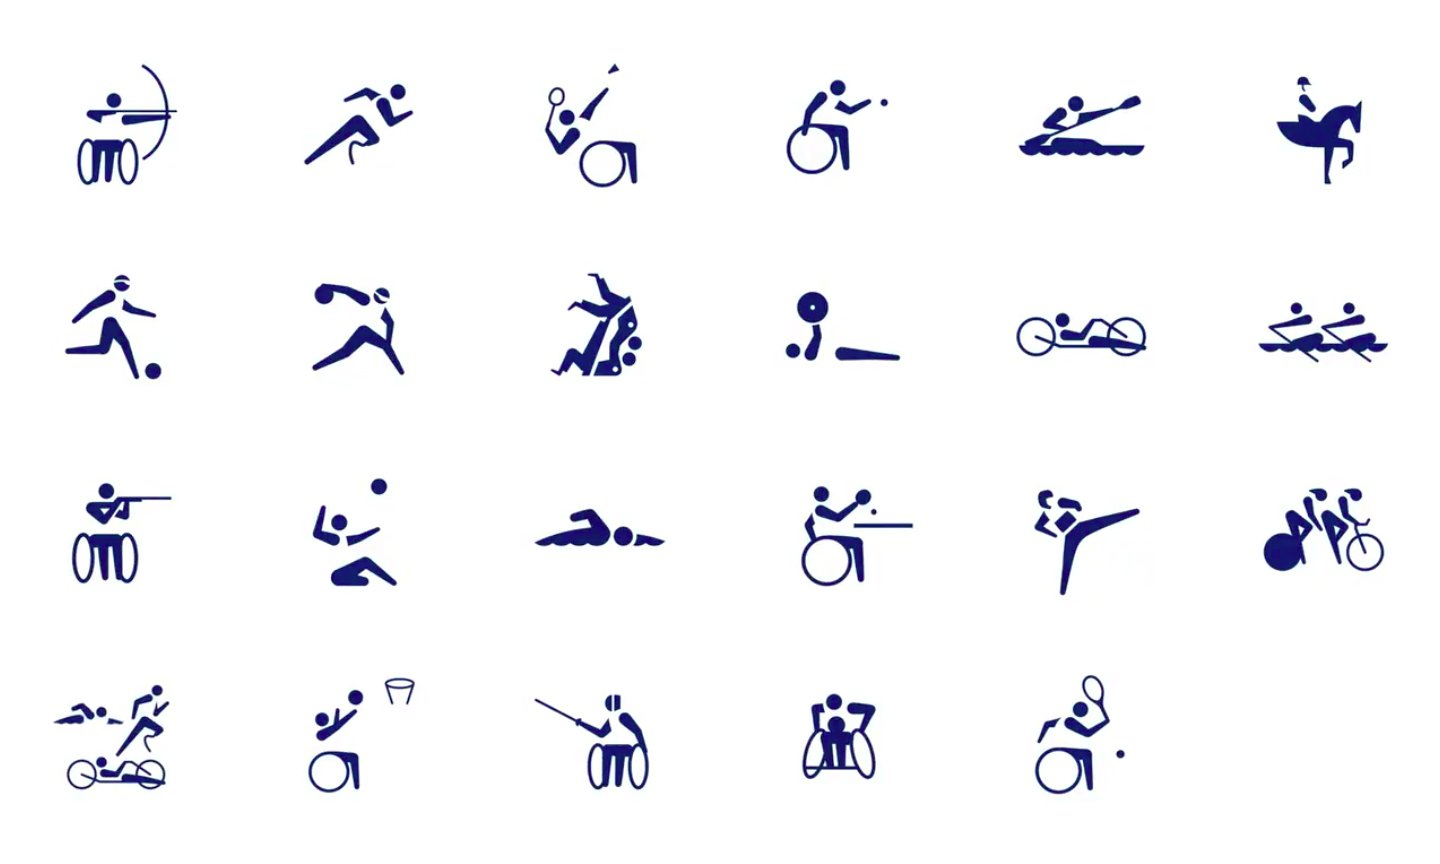 Thumbnail for Olympics' Retro-Inspired Kinetic Pictograms Show Innovative Nature of Design Behind the Games